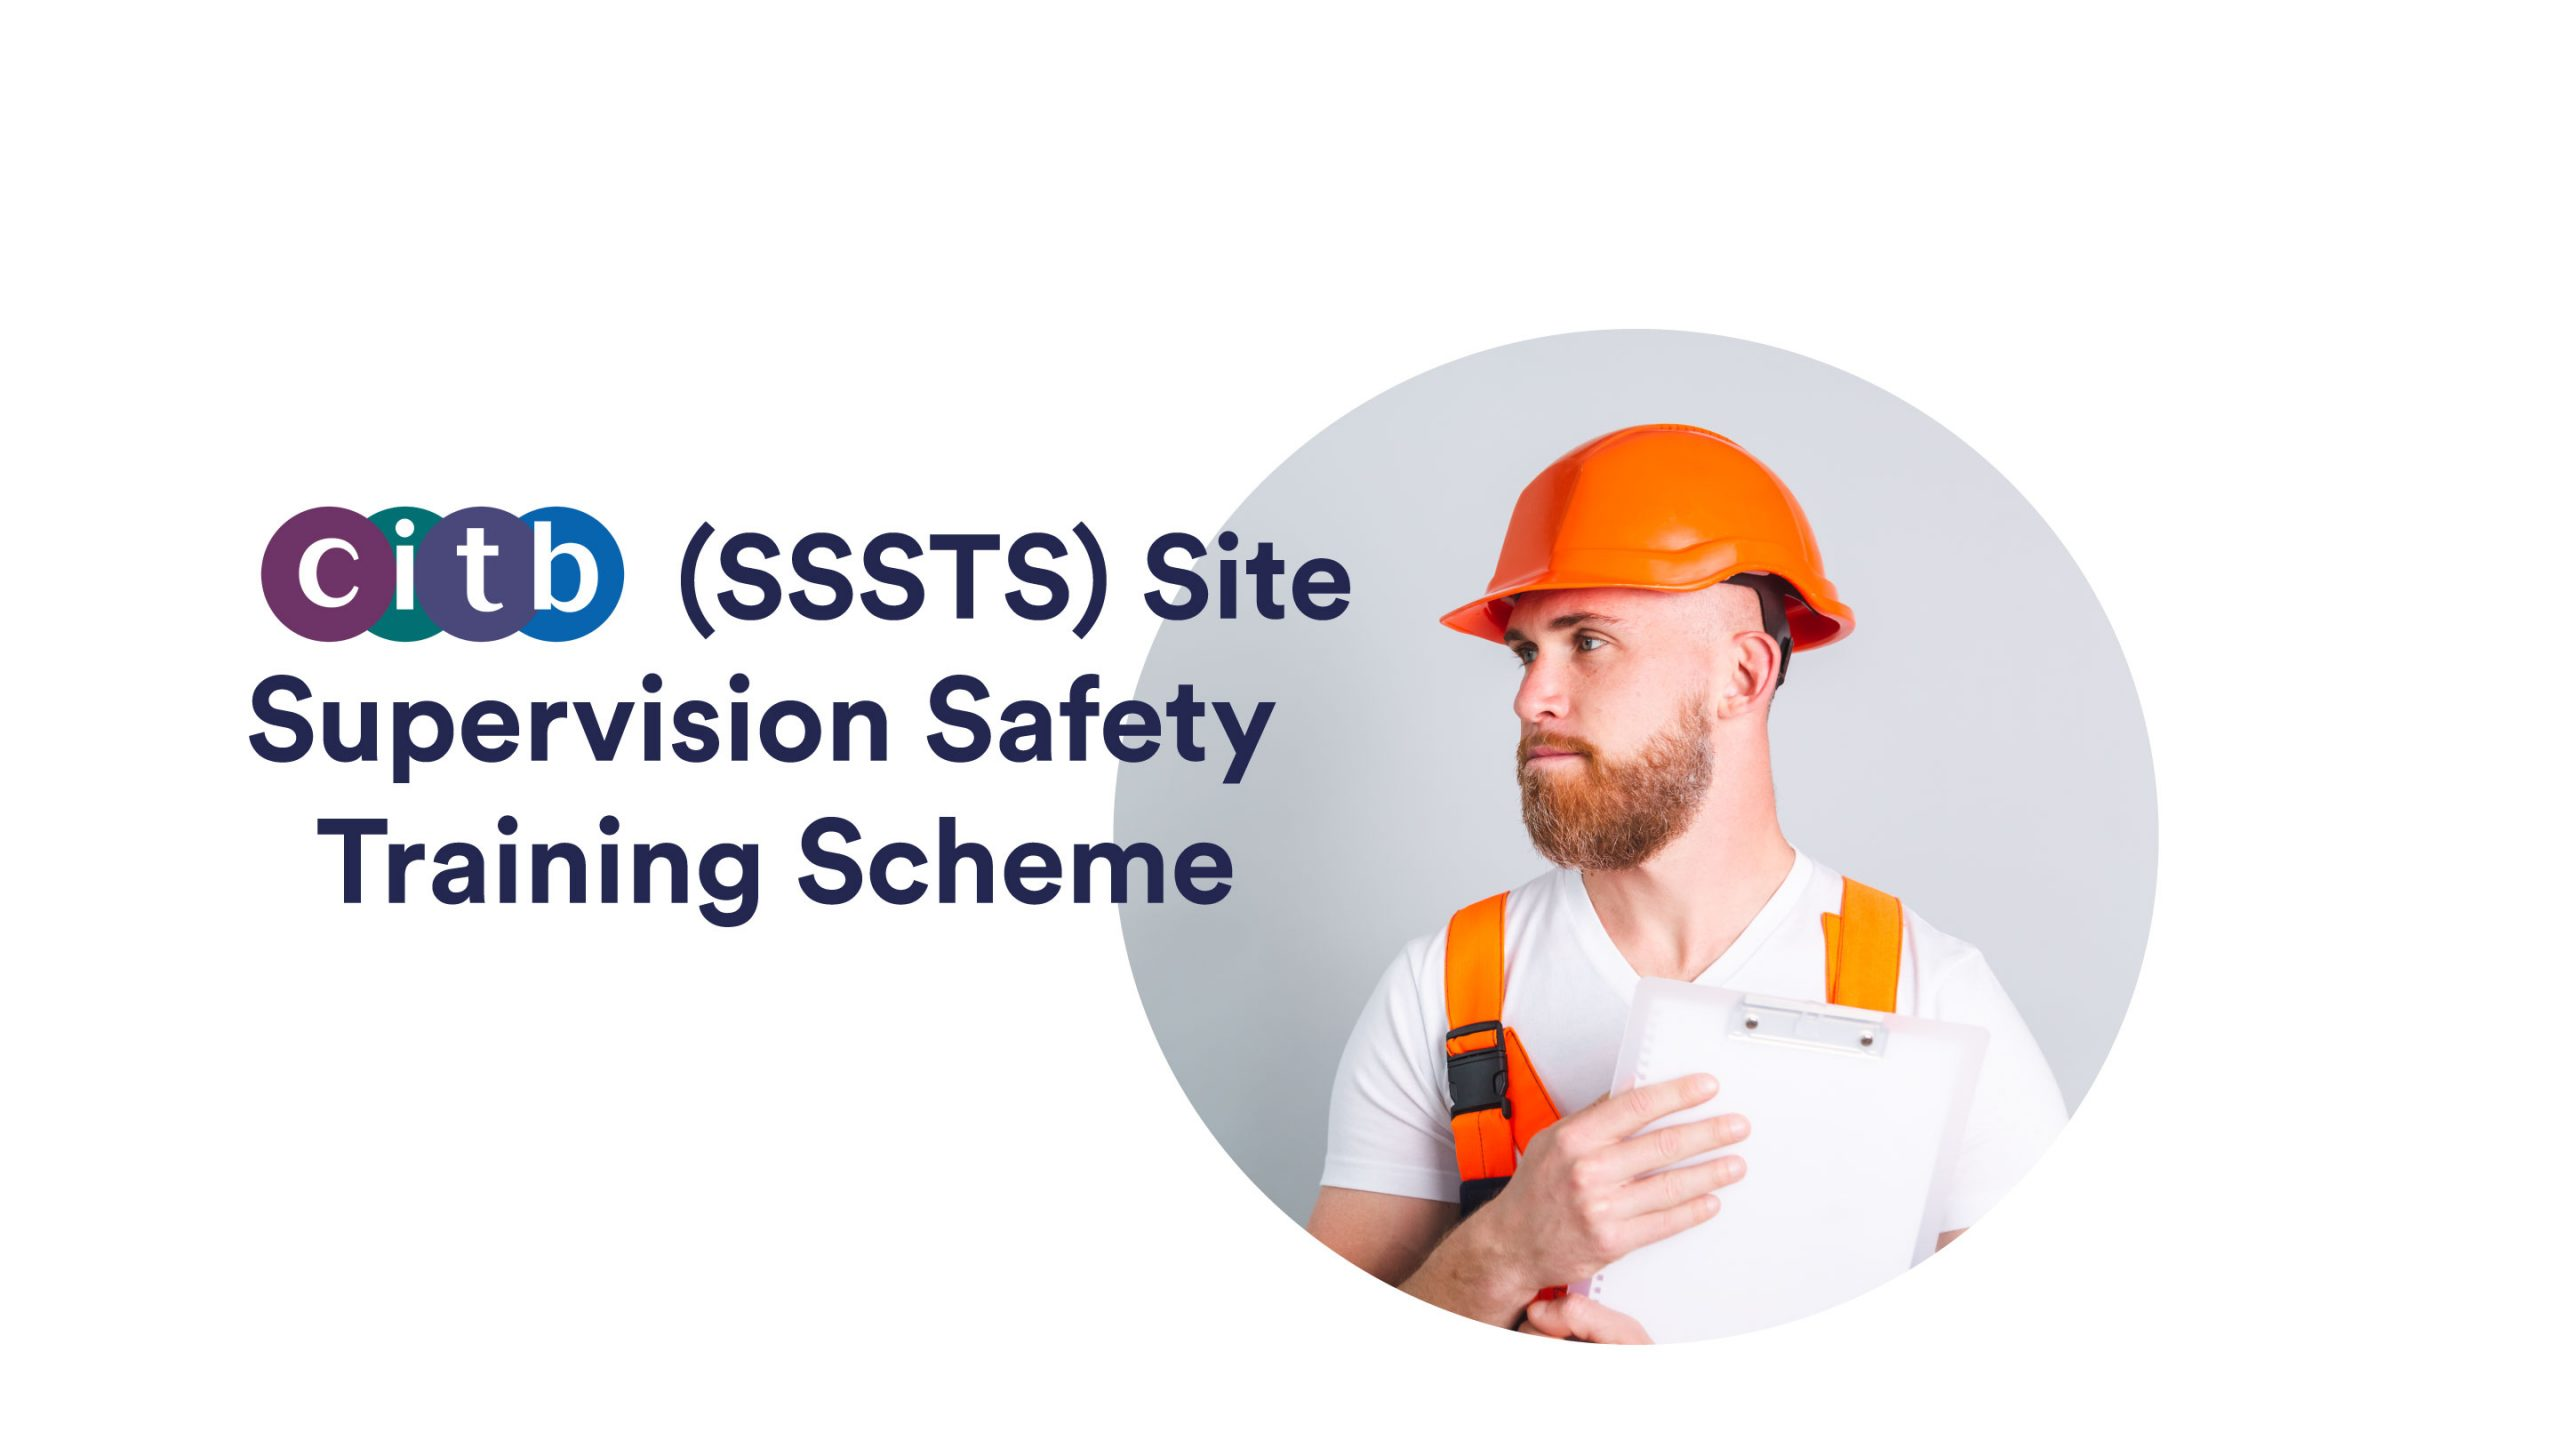 CITB_Site_Supervision_Safety_Training_Scheme_sssts_training_course_in_stoke